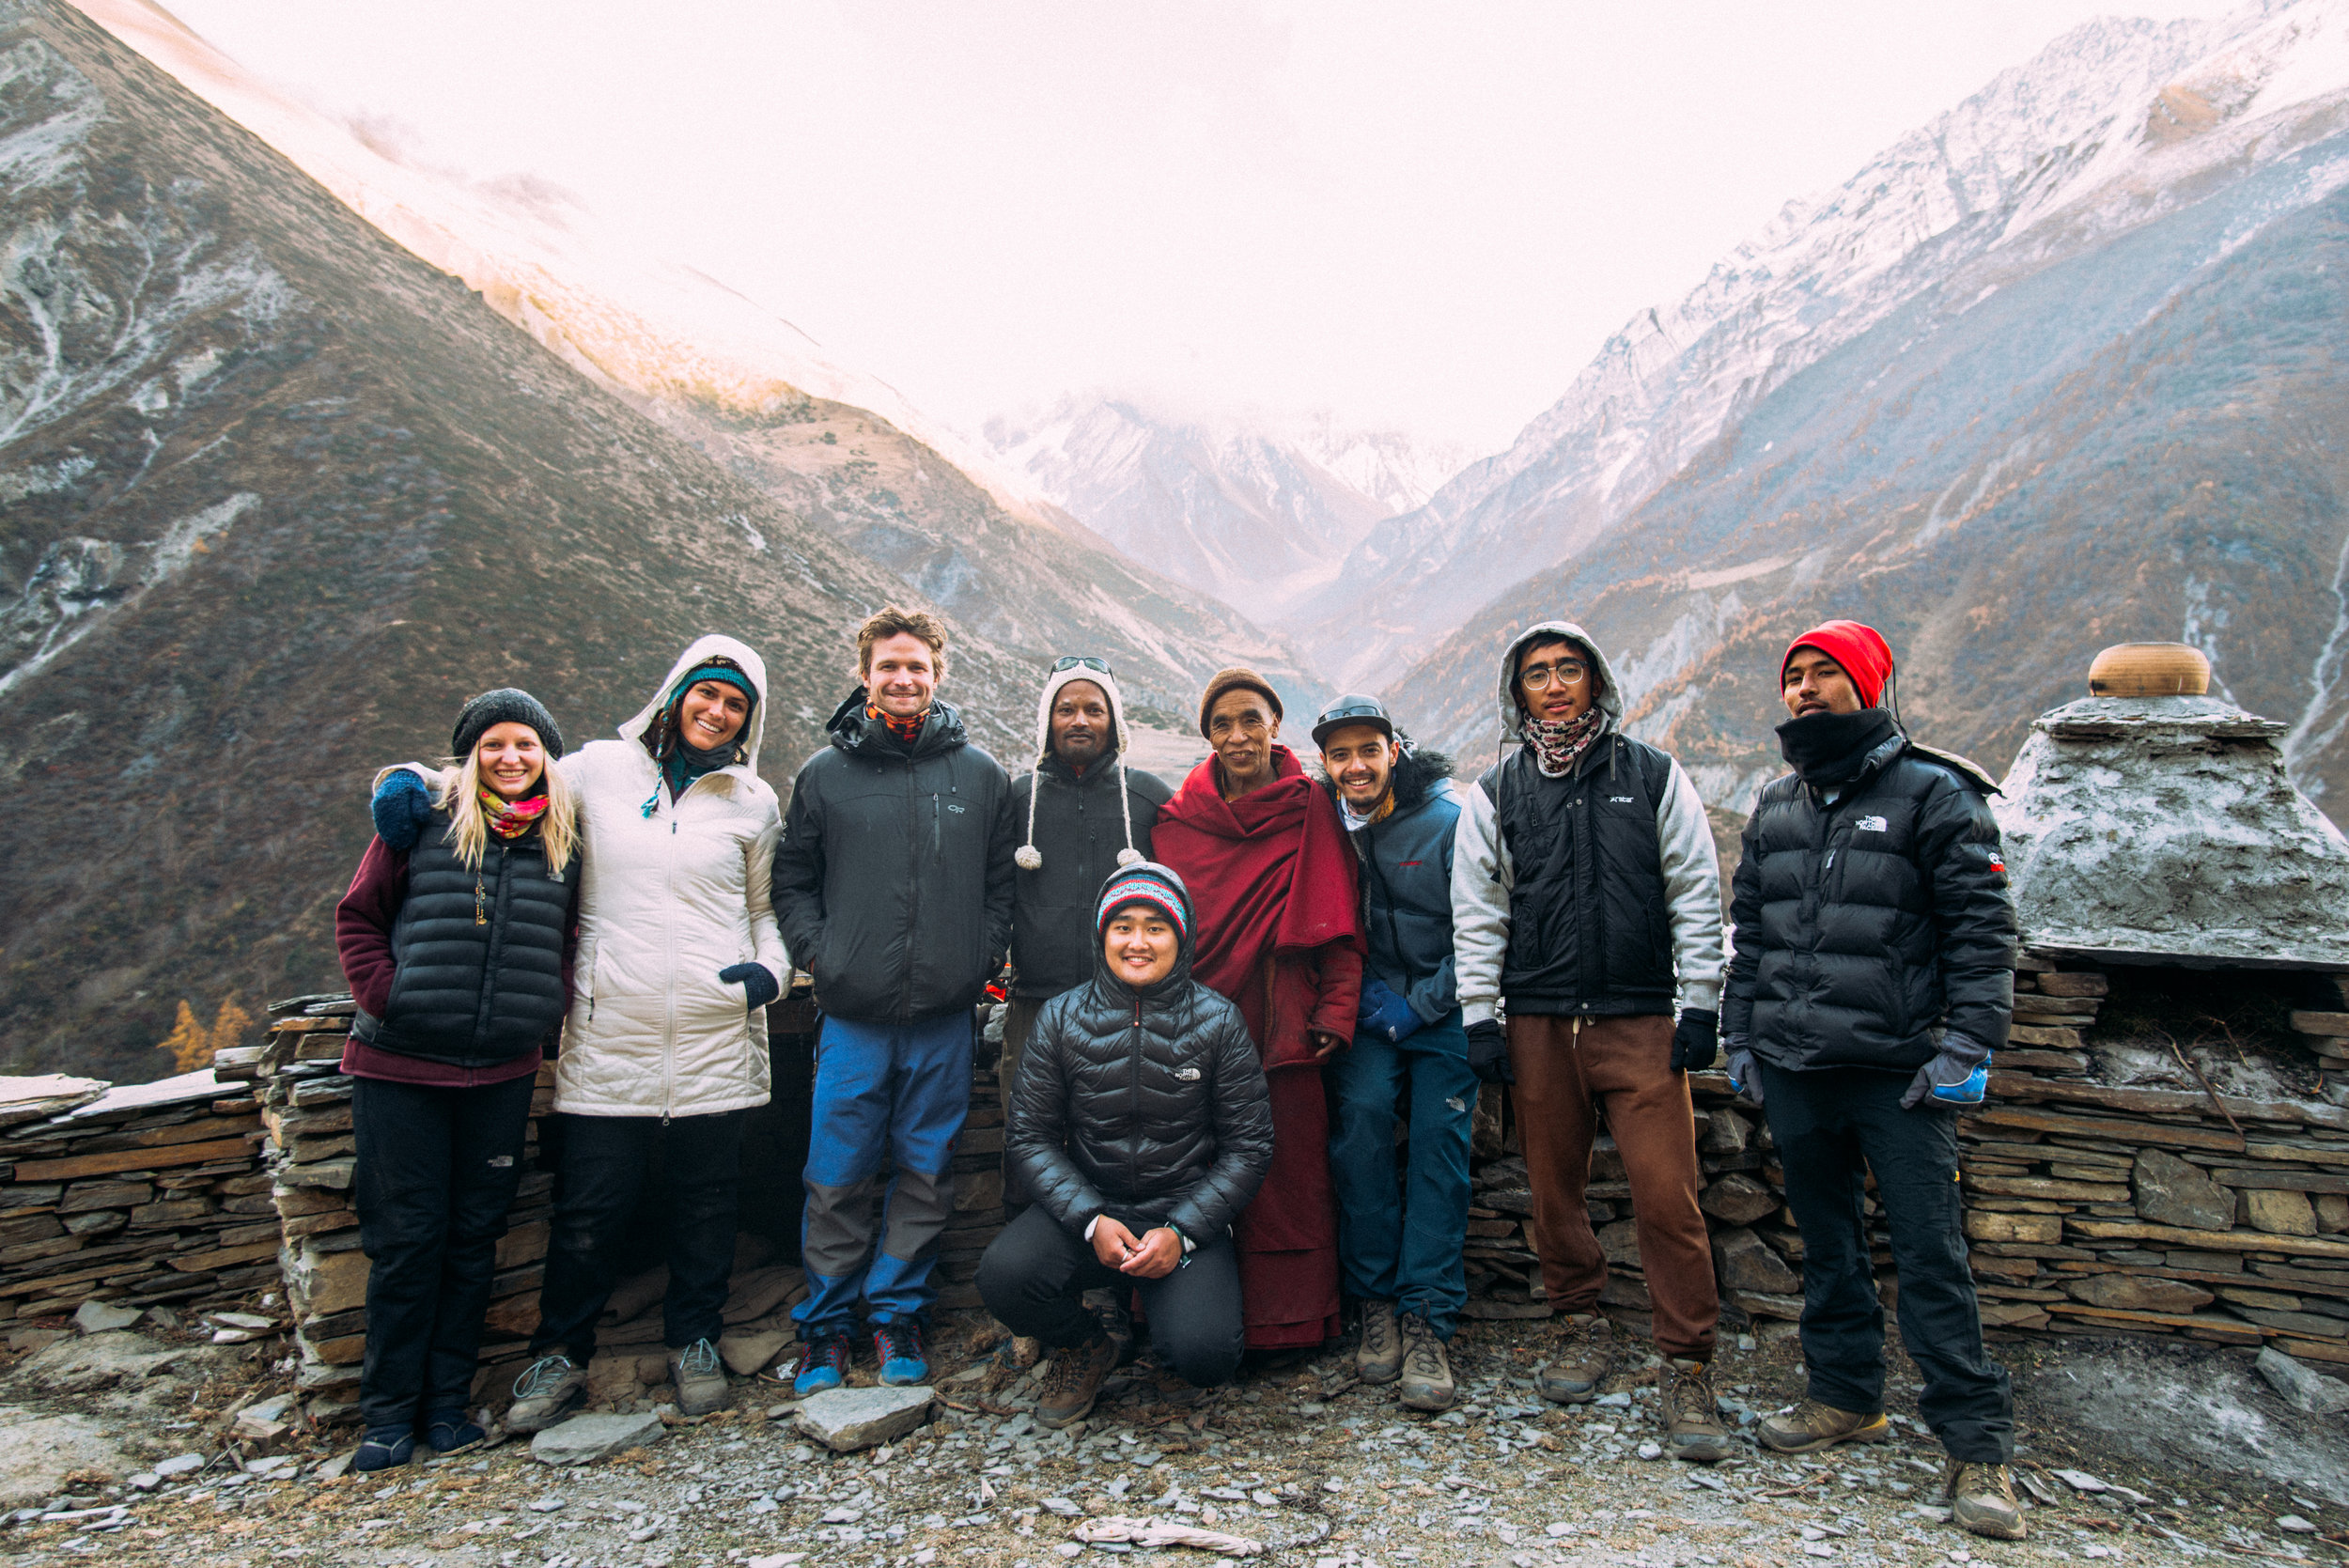 Our team of trekkers, guides, and videographers standing with one of the monks at the monastery of Mu Gompa in Tsum Valley.  Image by Jimee Lama.